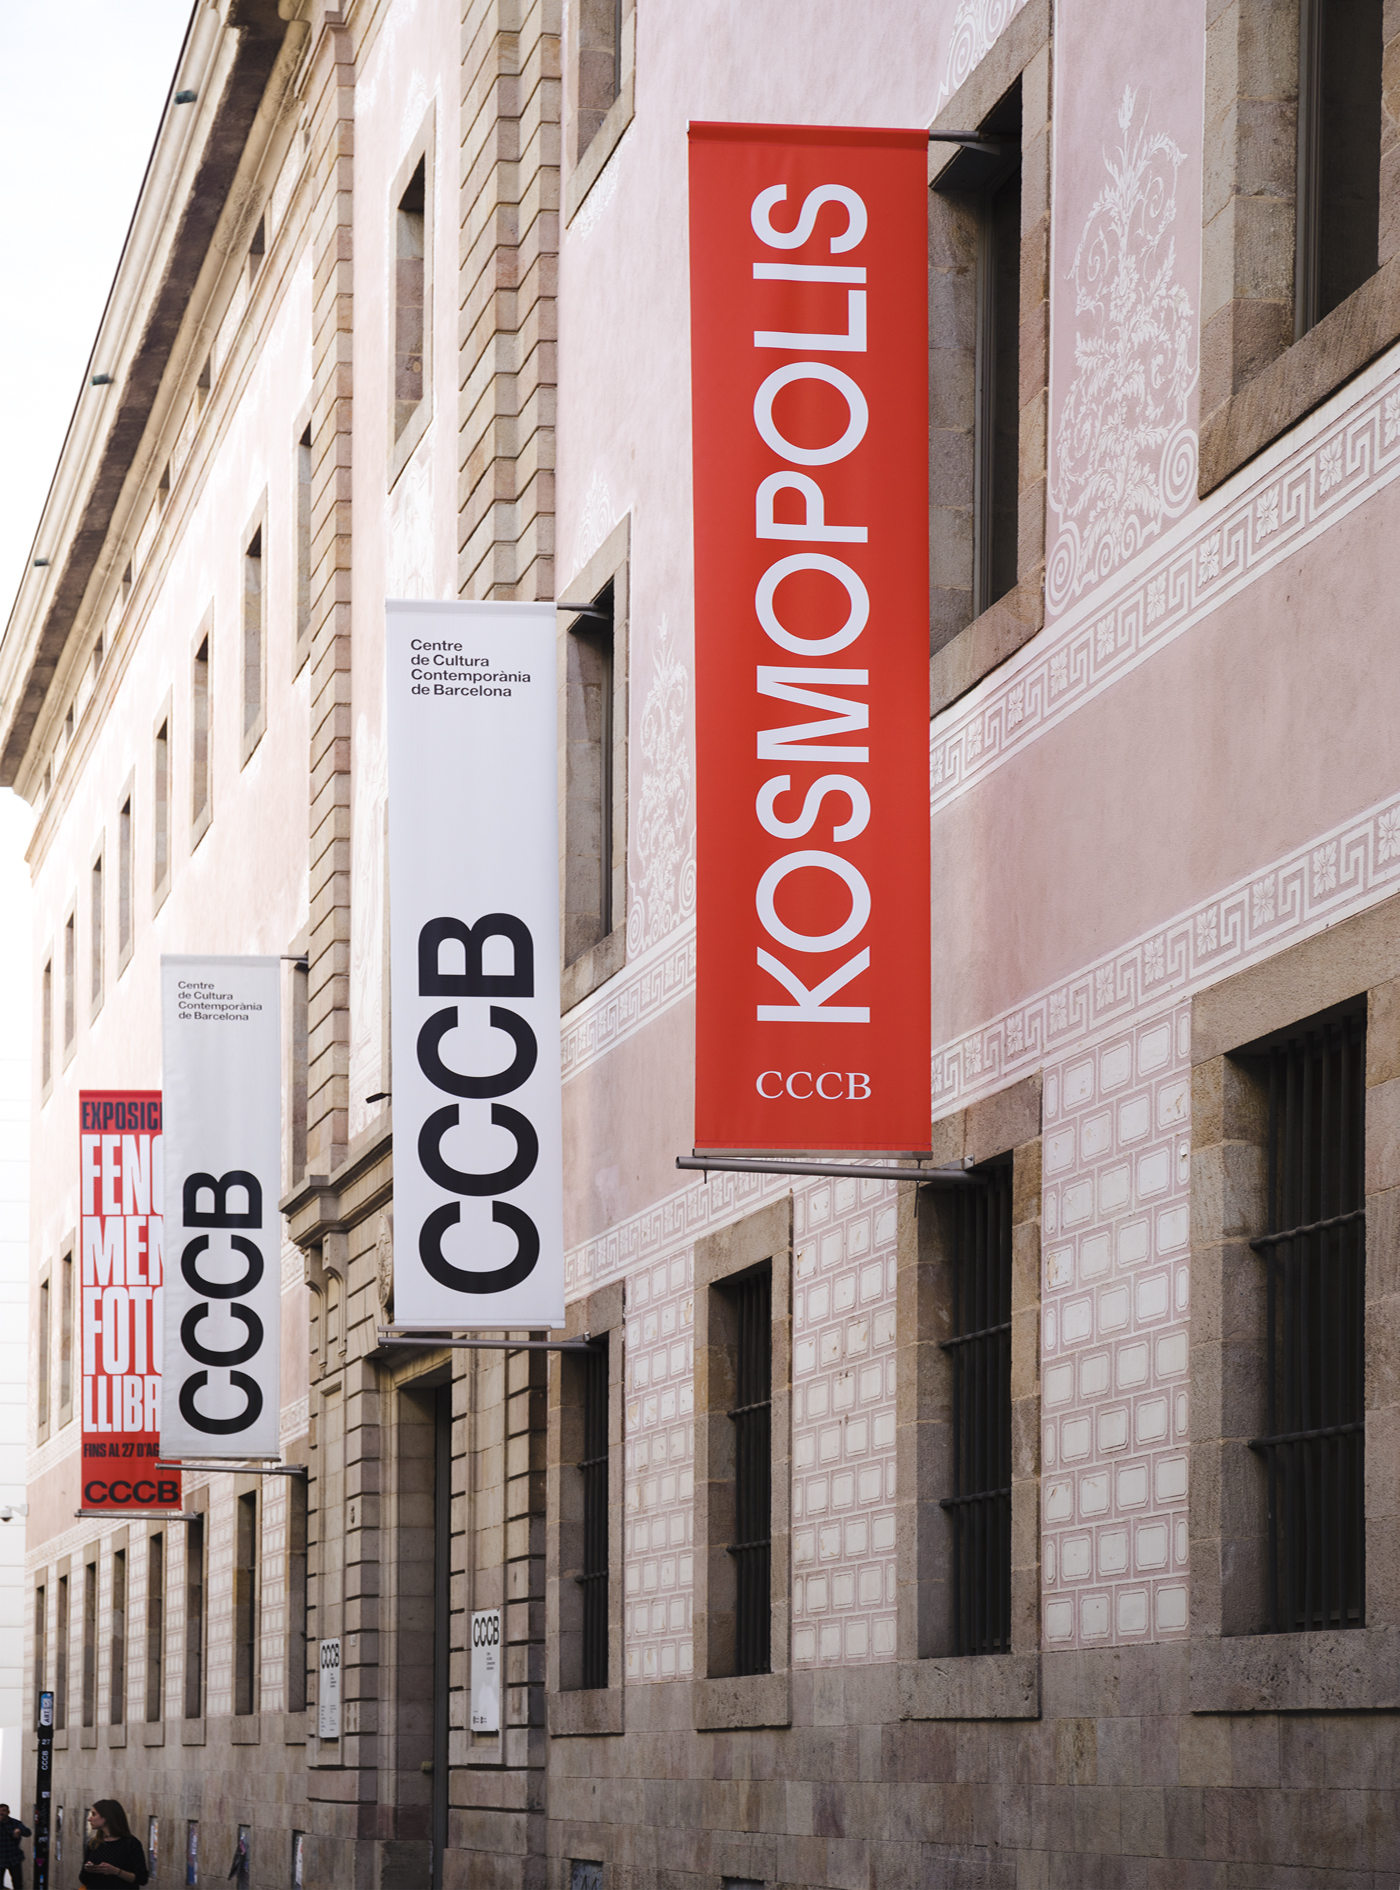 Visual identity and signage by Hey for Barcelona literature festival Kosmopolis